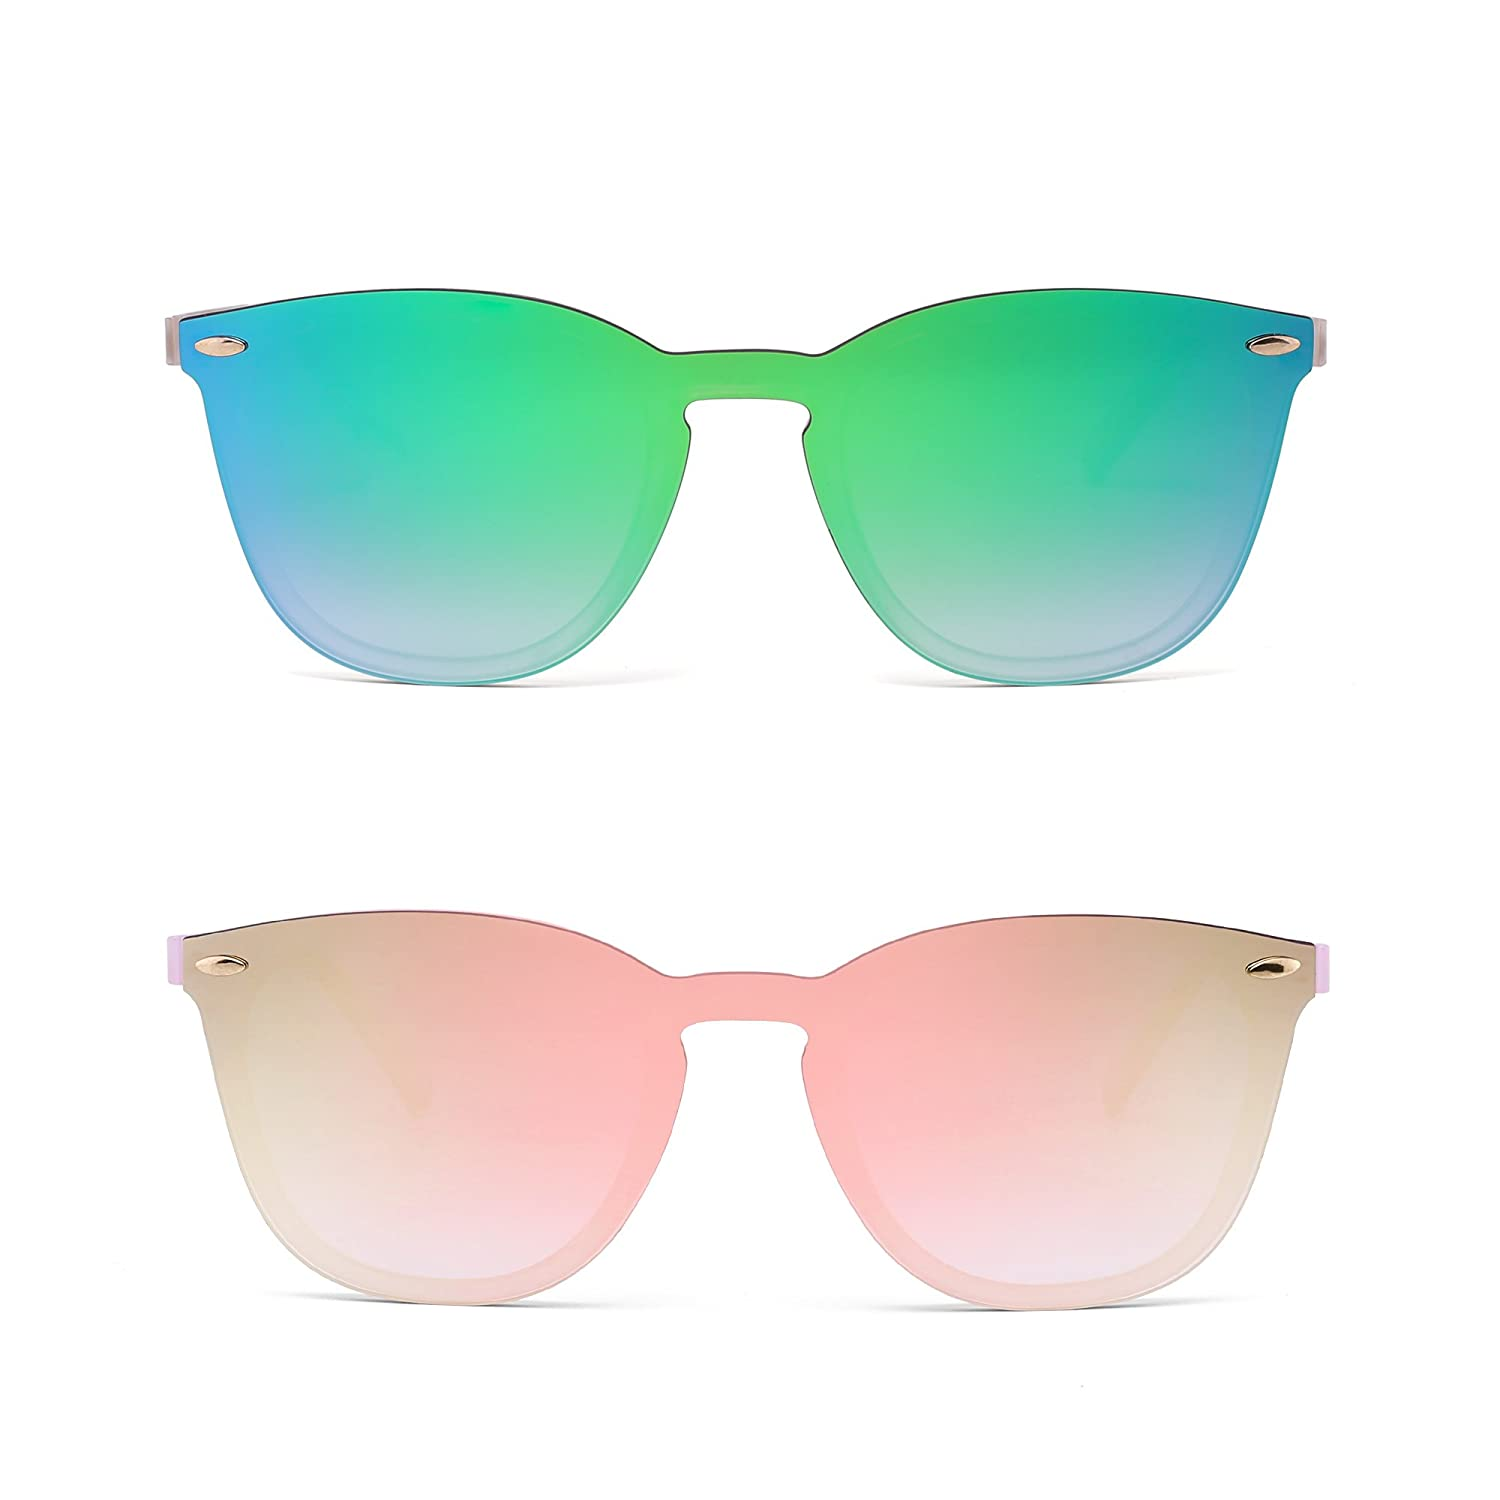 1c4f3e2cb12 JIM HALO Rimless Sunglasses One Piece Mirror Reflective Eyeglasses for Men  Women 2 Pack (Green   Pink) at Amazon Women s Clothing store